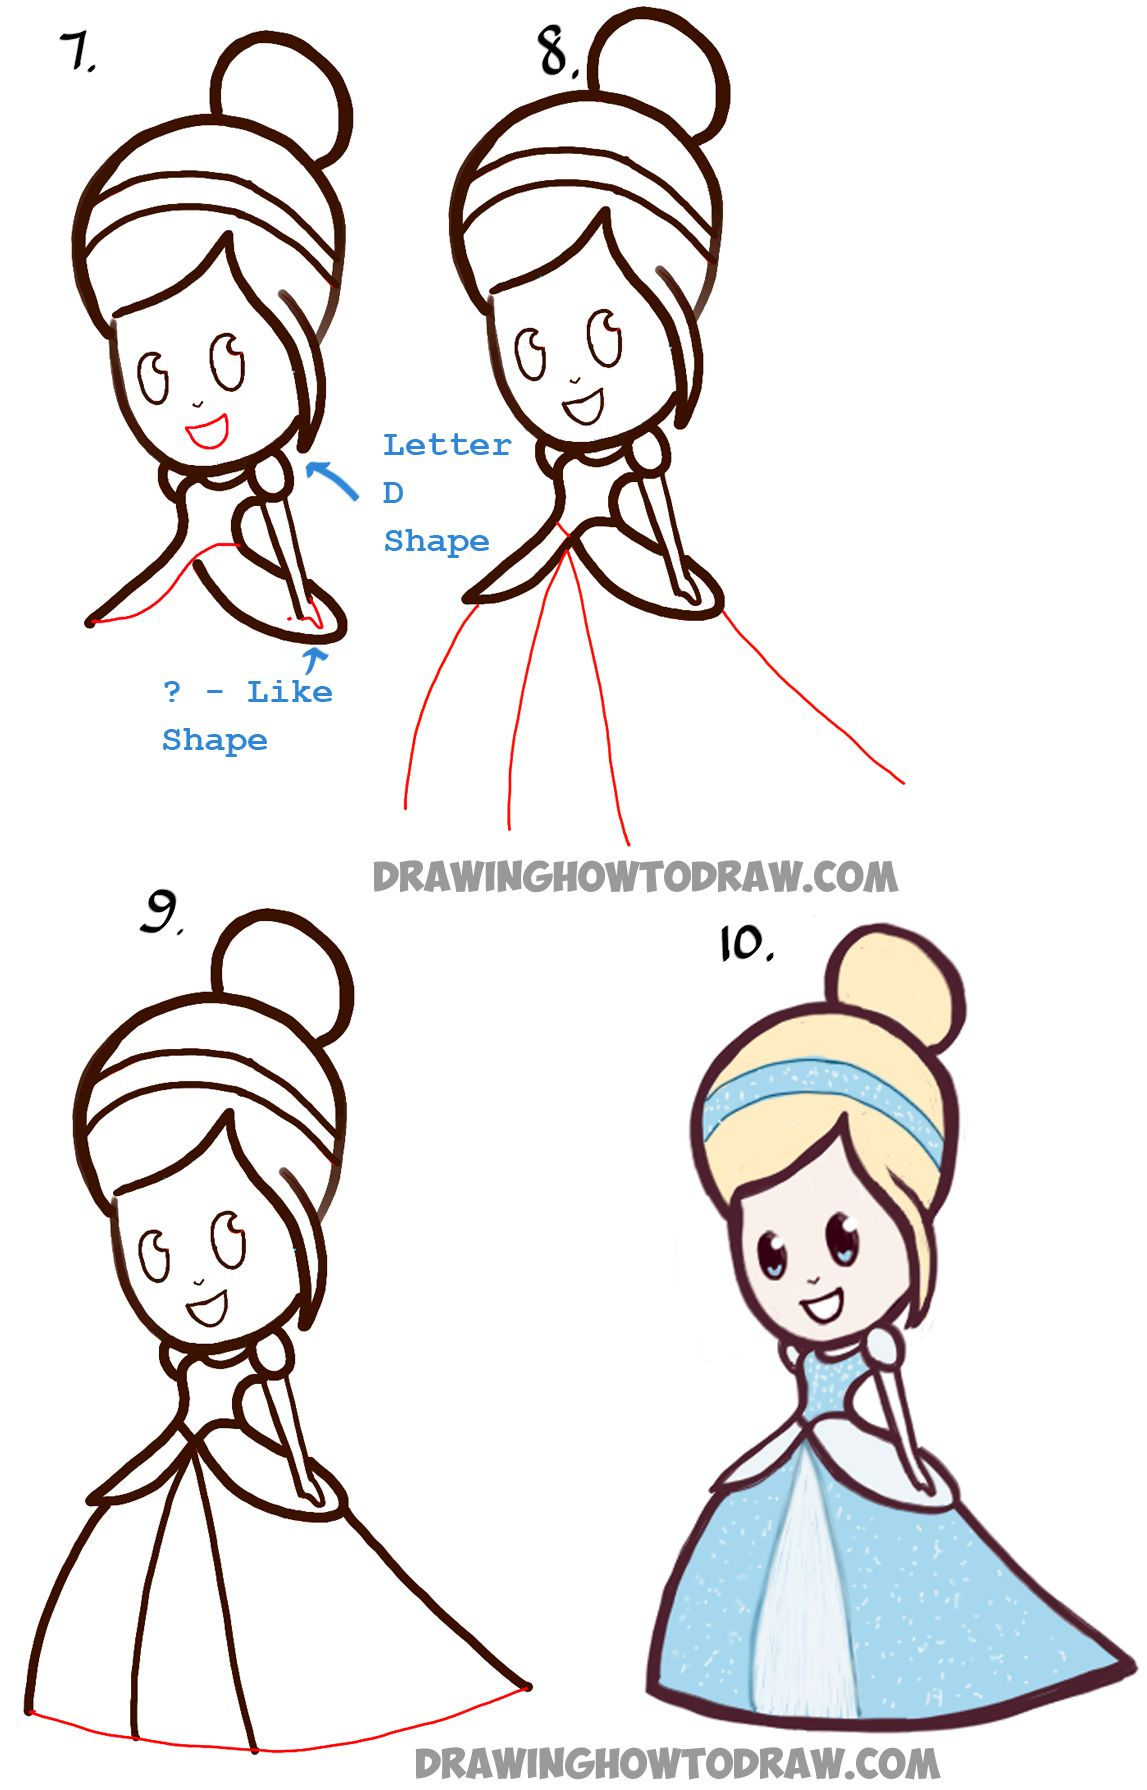 How To Draw Cute Baby Chibi Cinderella Easy Step By Step Drawing Tutorial How To Draw Step By Step Drawing Tutorials Cute Baby Drawings Cute Drawings Baby Drawing Easy